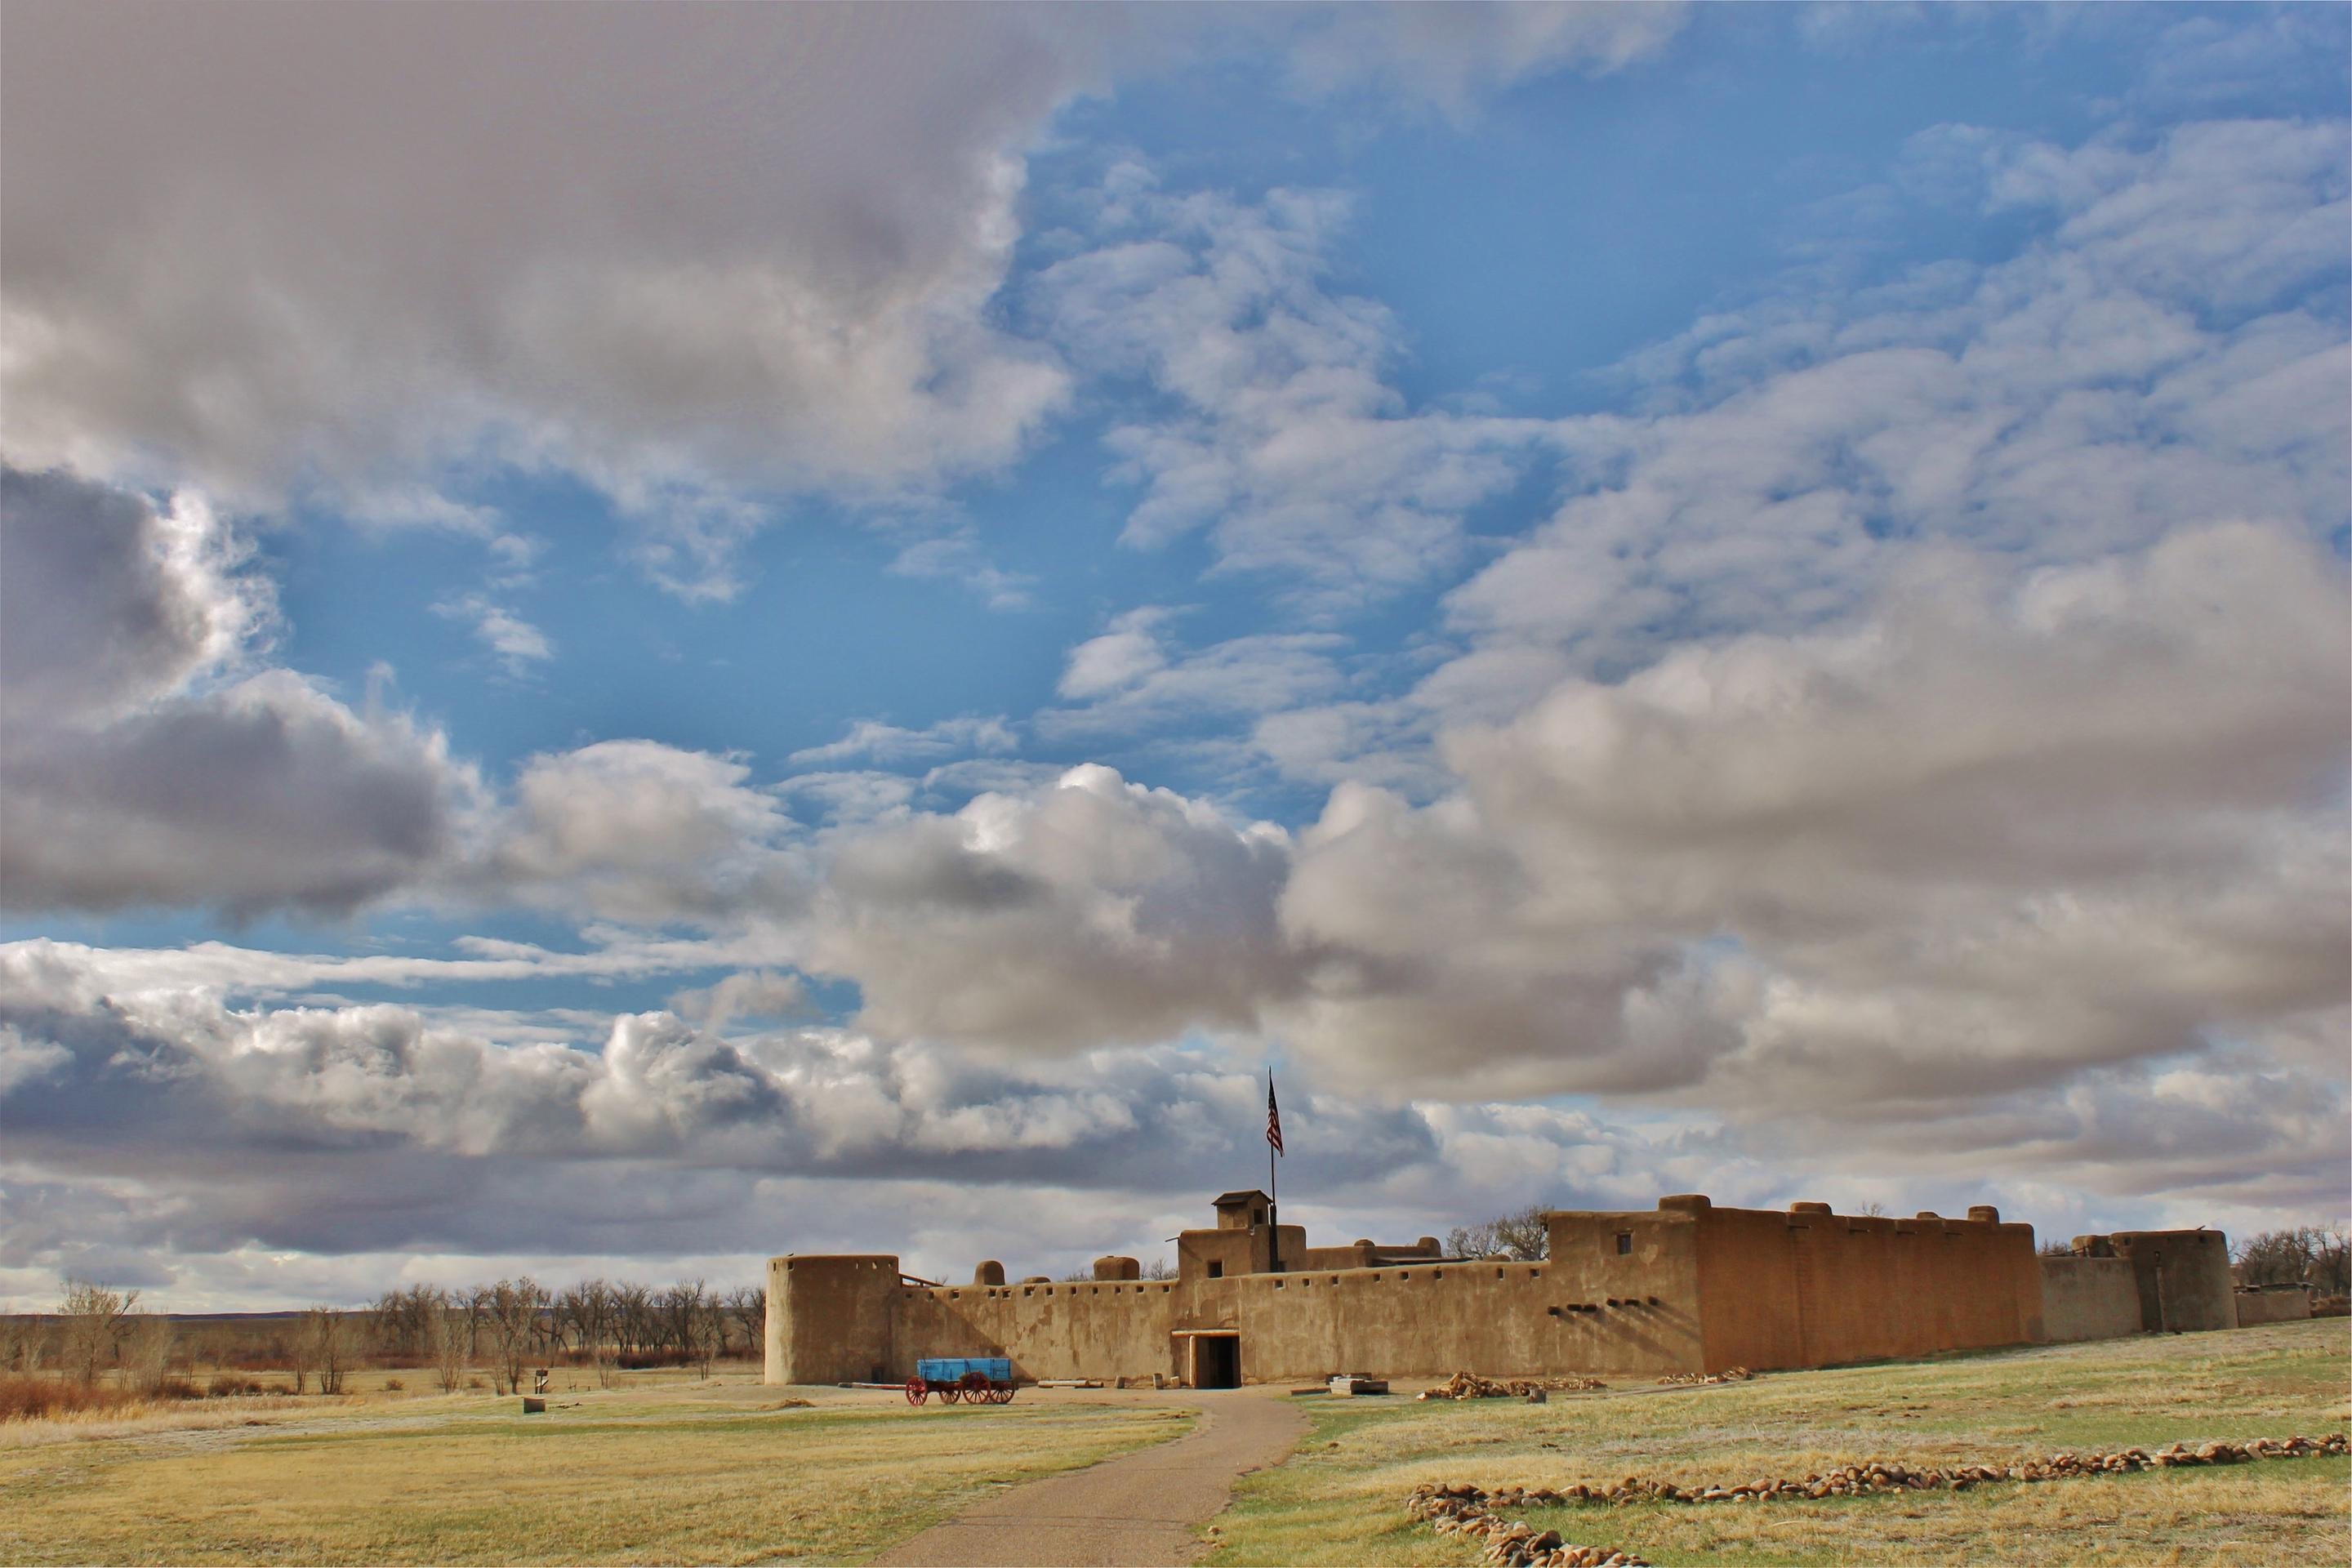 Bent's Old FortBent's Old Fort was the only permanent white settlement on the Santa Fe Trail between Missouri and Santa Fe.